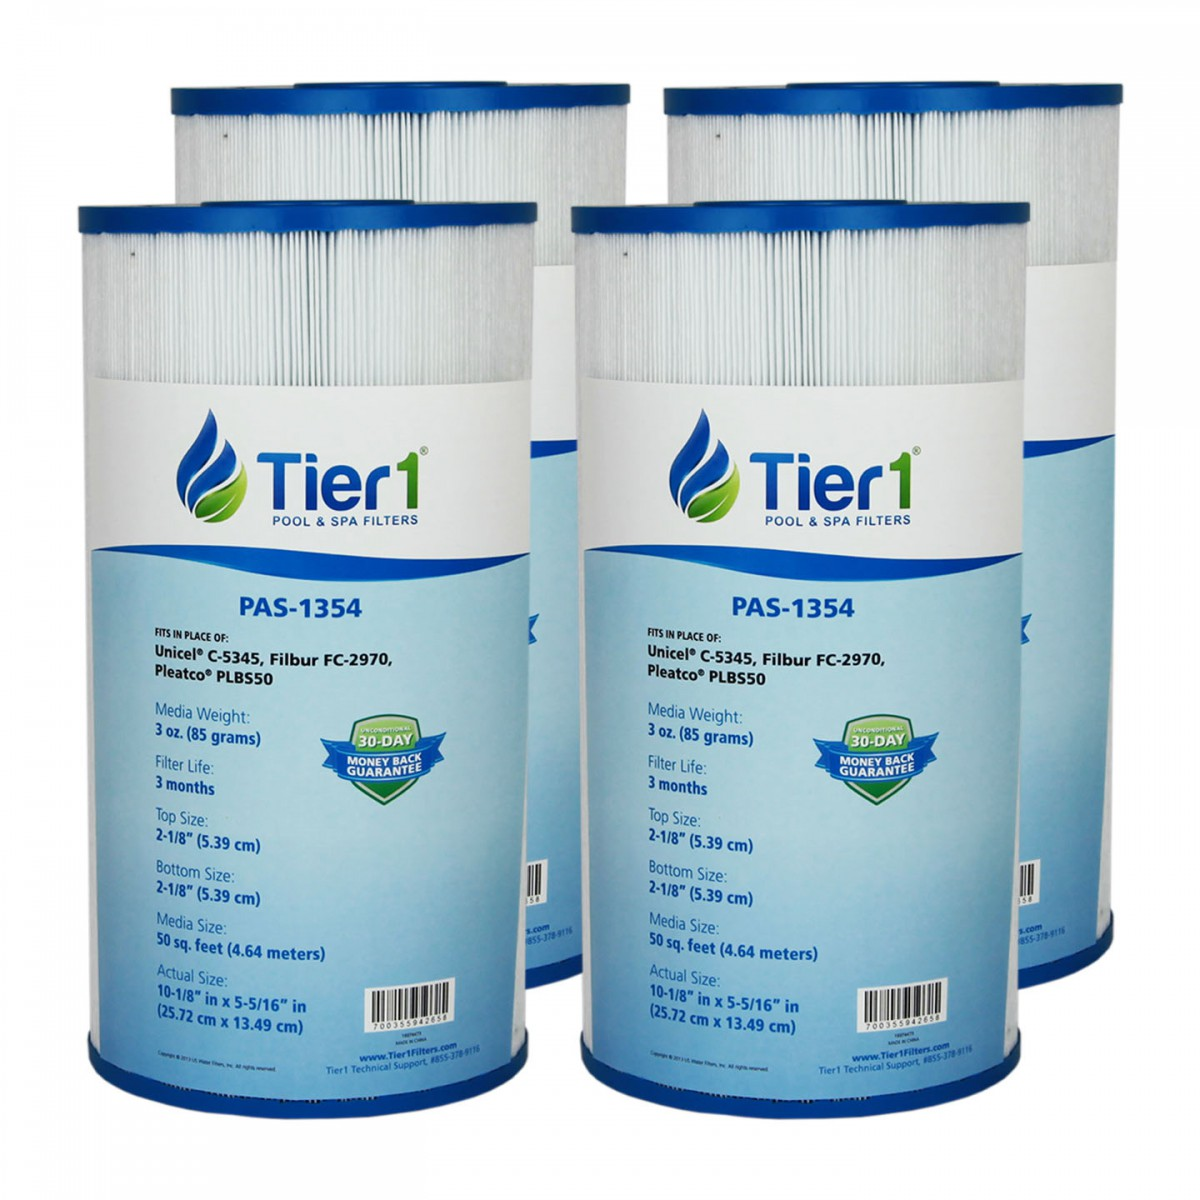 2 Pack Pleatco PLBS50 Top Load Filter Cartridge Leisure Bay Dynasty Spas C-5345